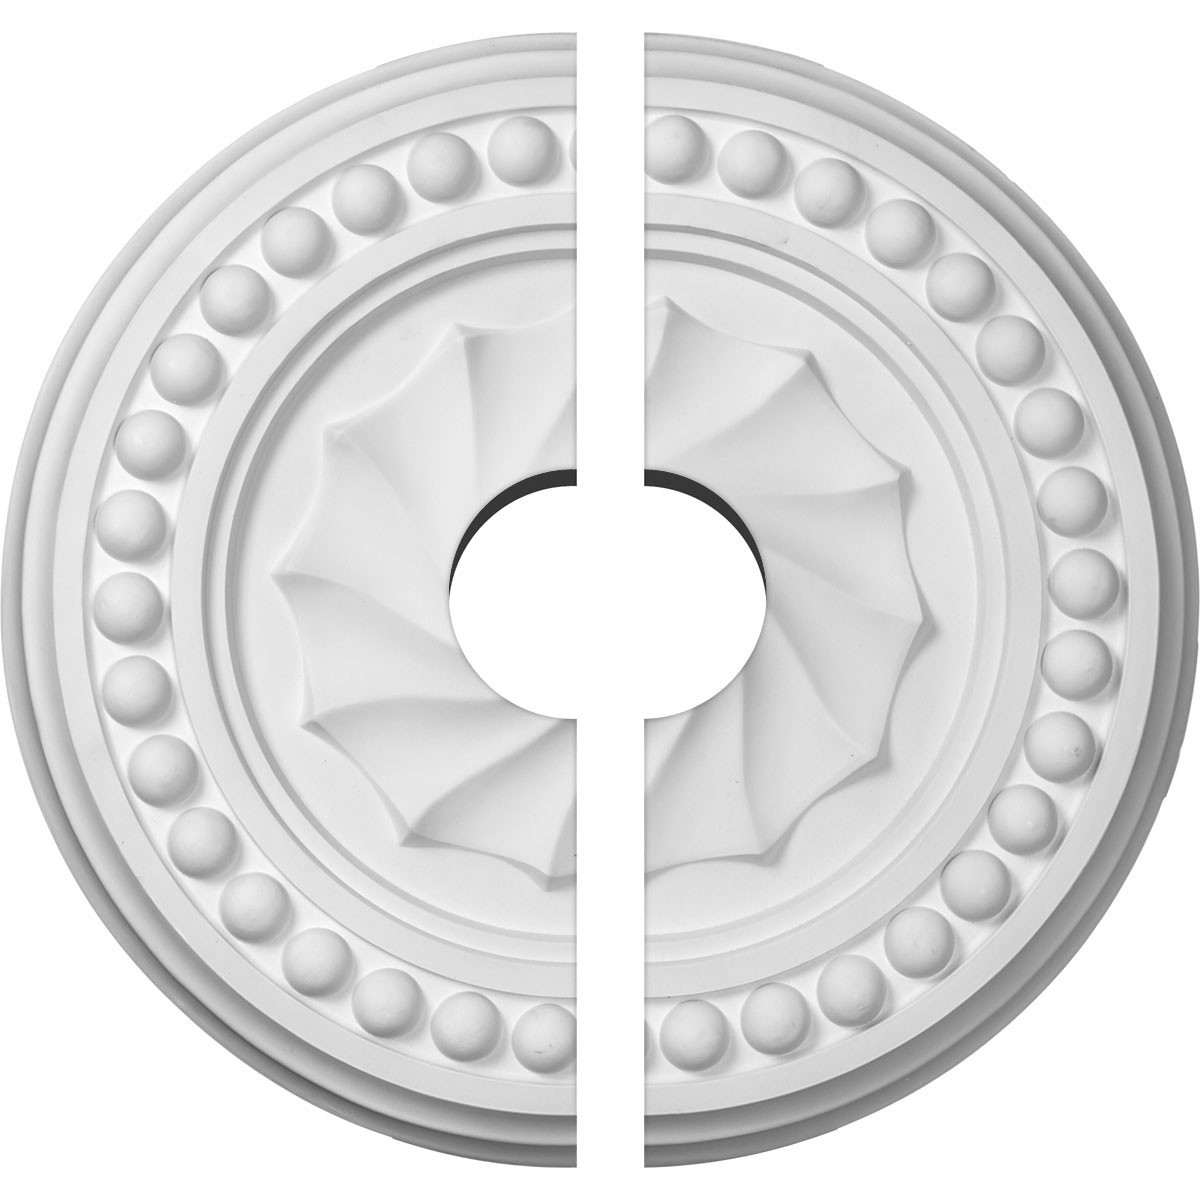 """EM-CM15FO2-03500 - 15 3/4""""OD x 3 1/2""""ID x 2""""P Foster Shell Ceiling Medallion, Two Piece (Fits Canopies up to 9 5/8"""")"""